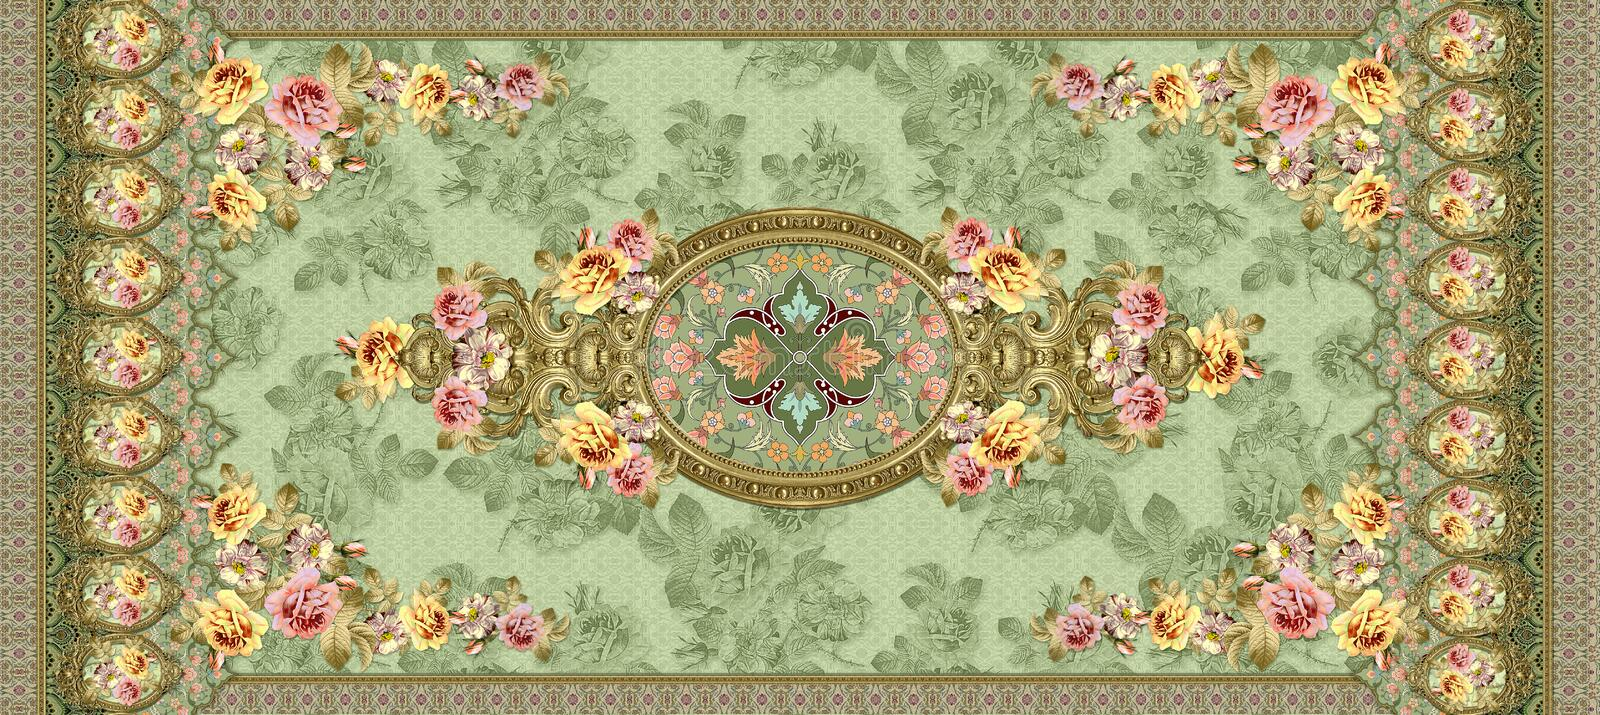 Classical flower ornament with green texture background vector illustration